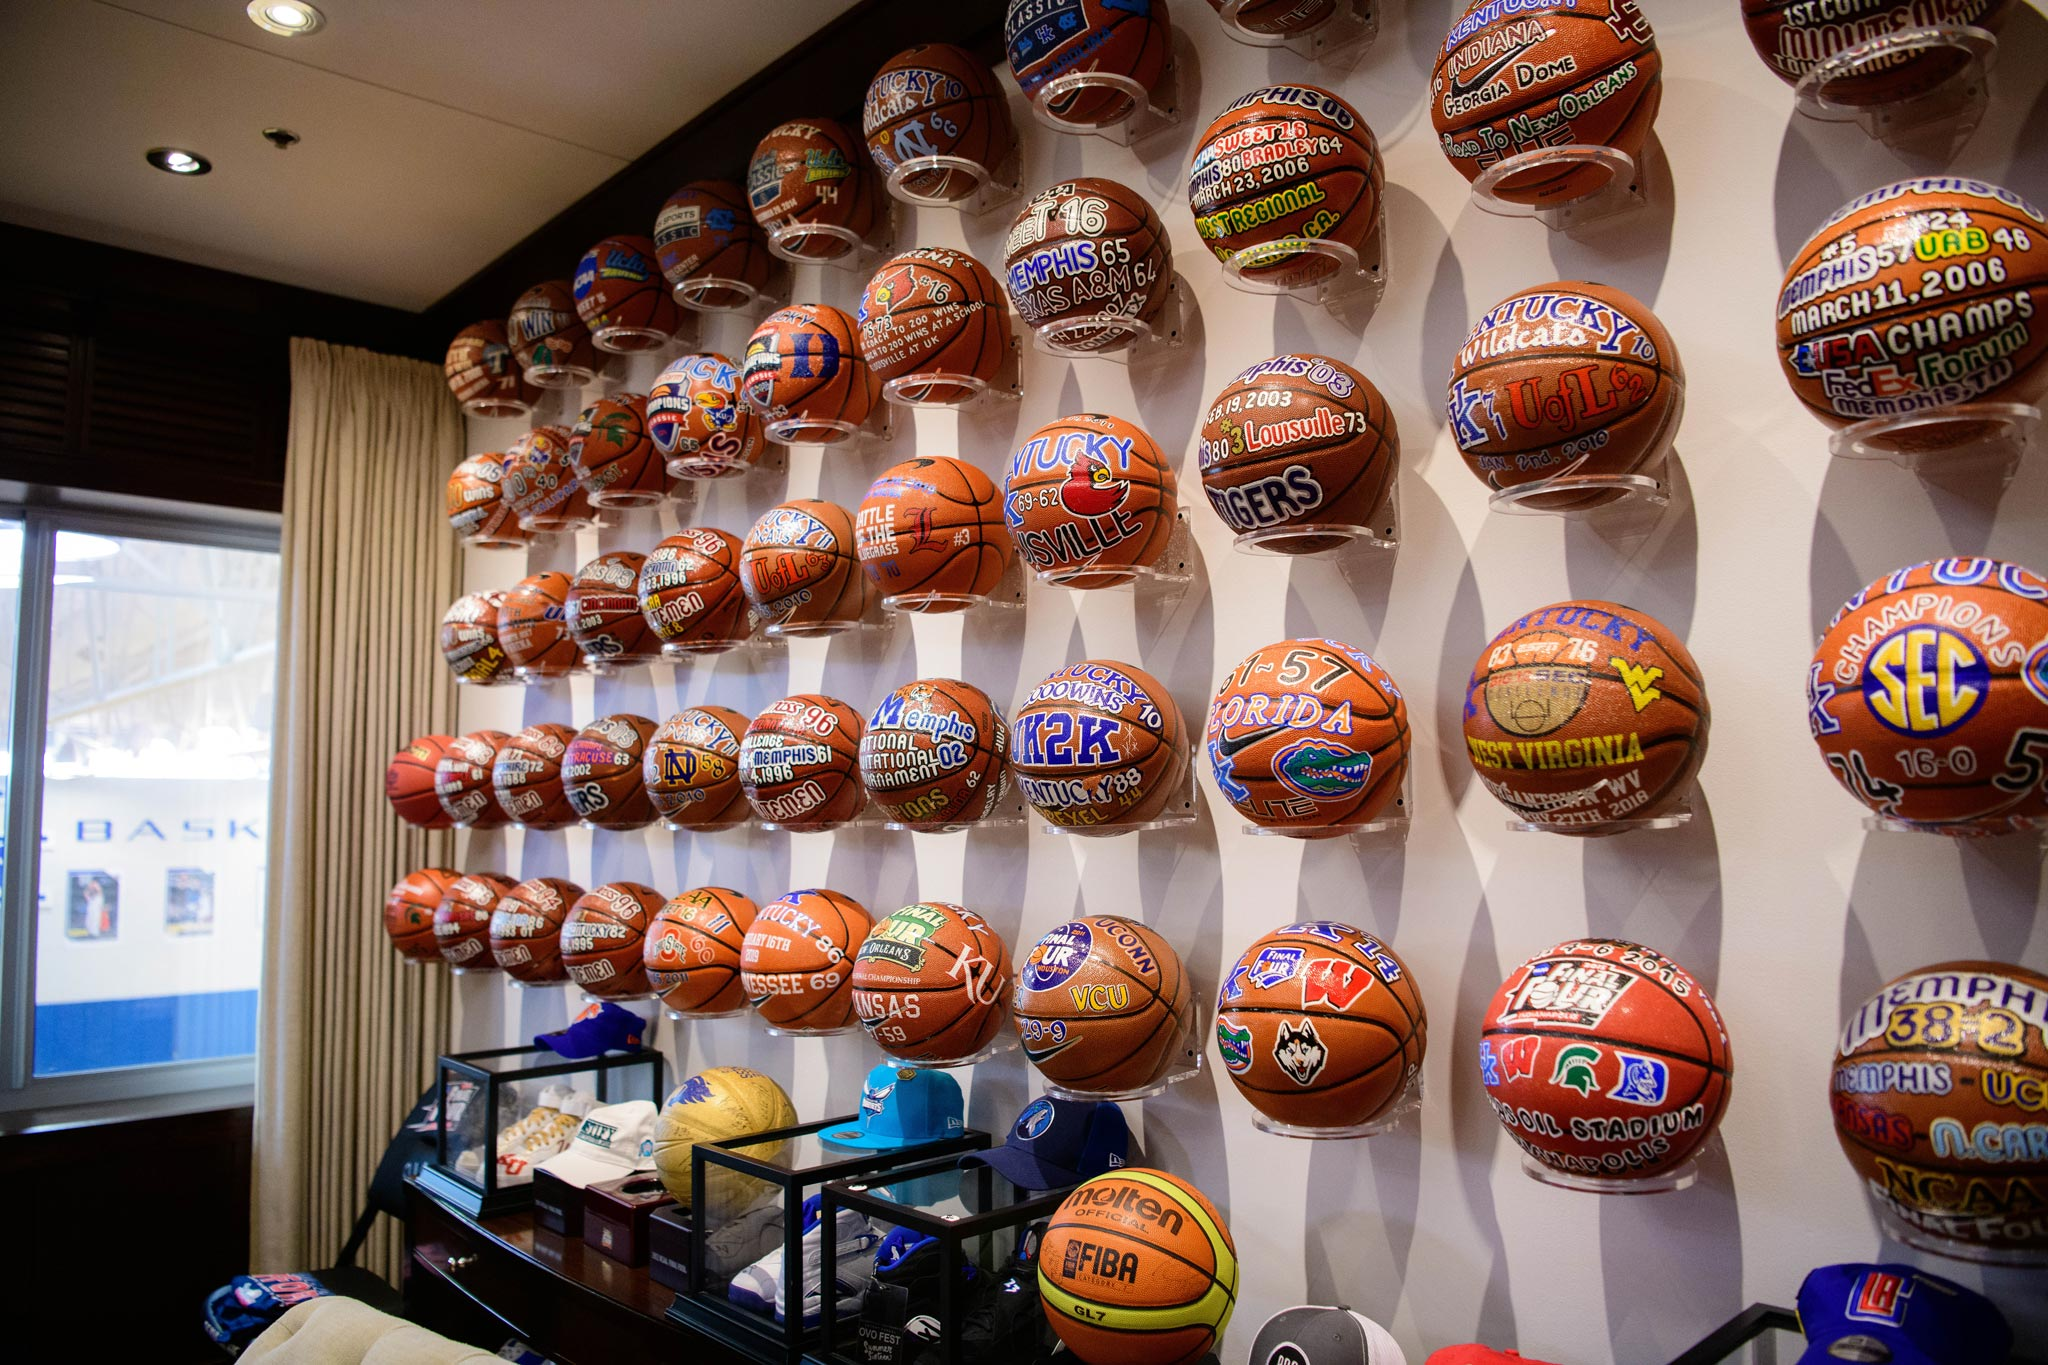 A wall covered in display mounts with championship basketballs.